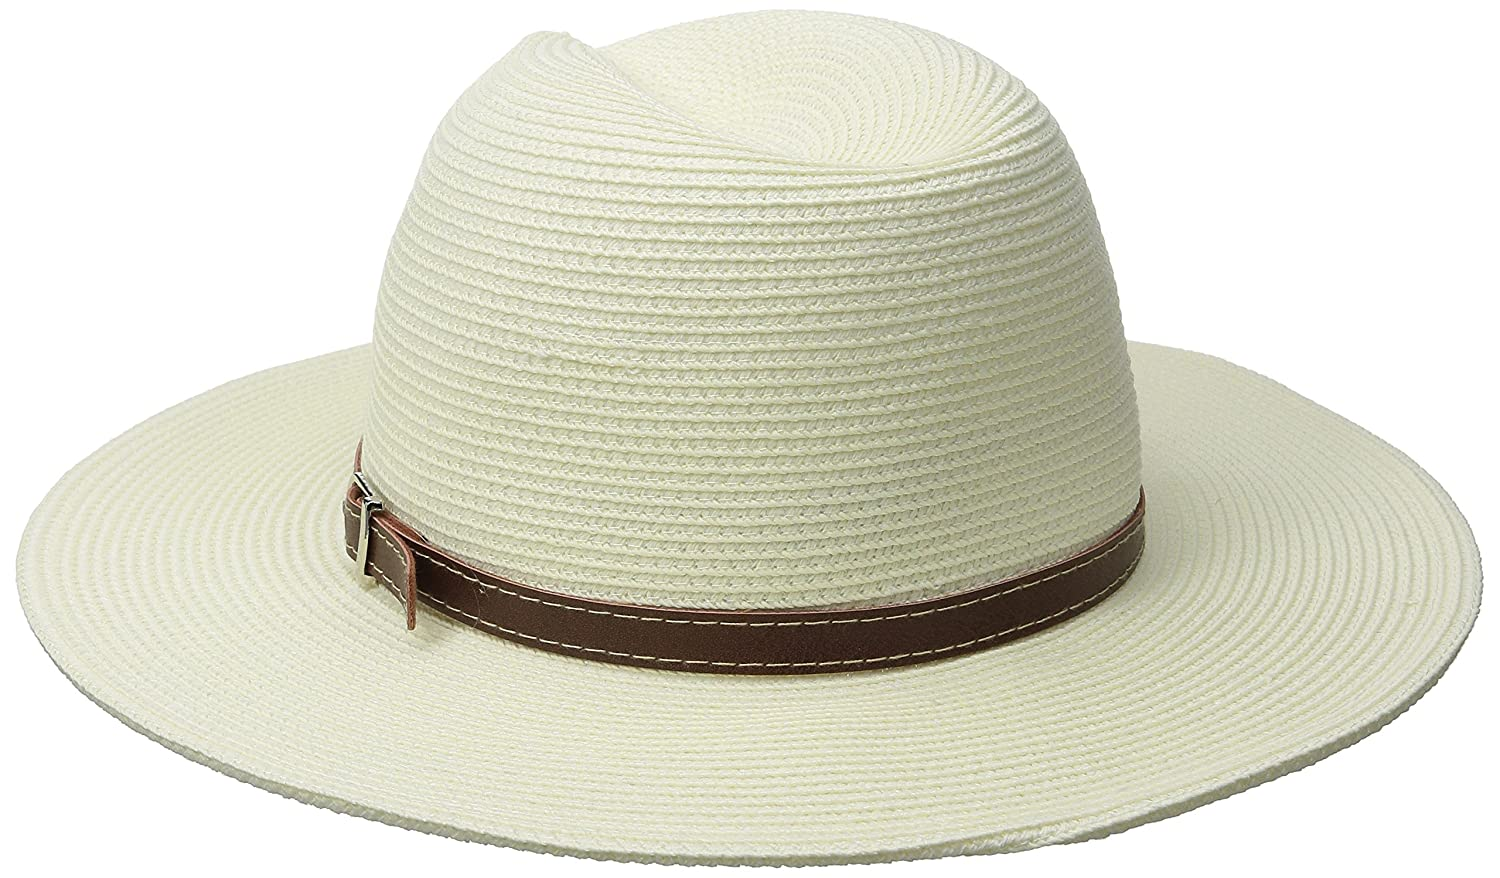 58c0caed6ae Amazon.com  Sunday Afternoons Coronado Hat (Cream)  Sports   Outdoors